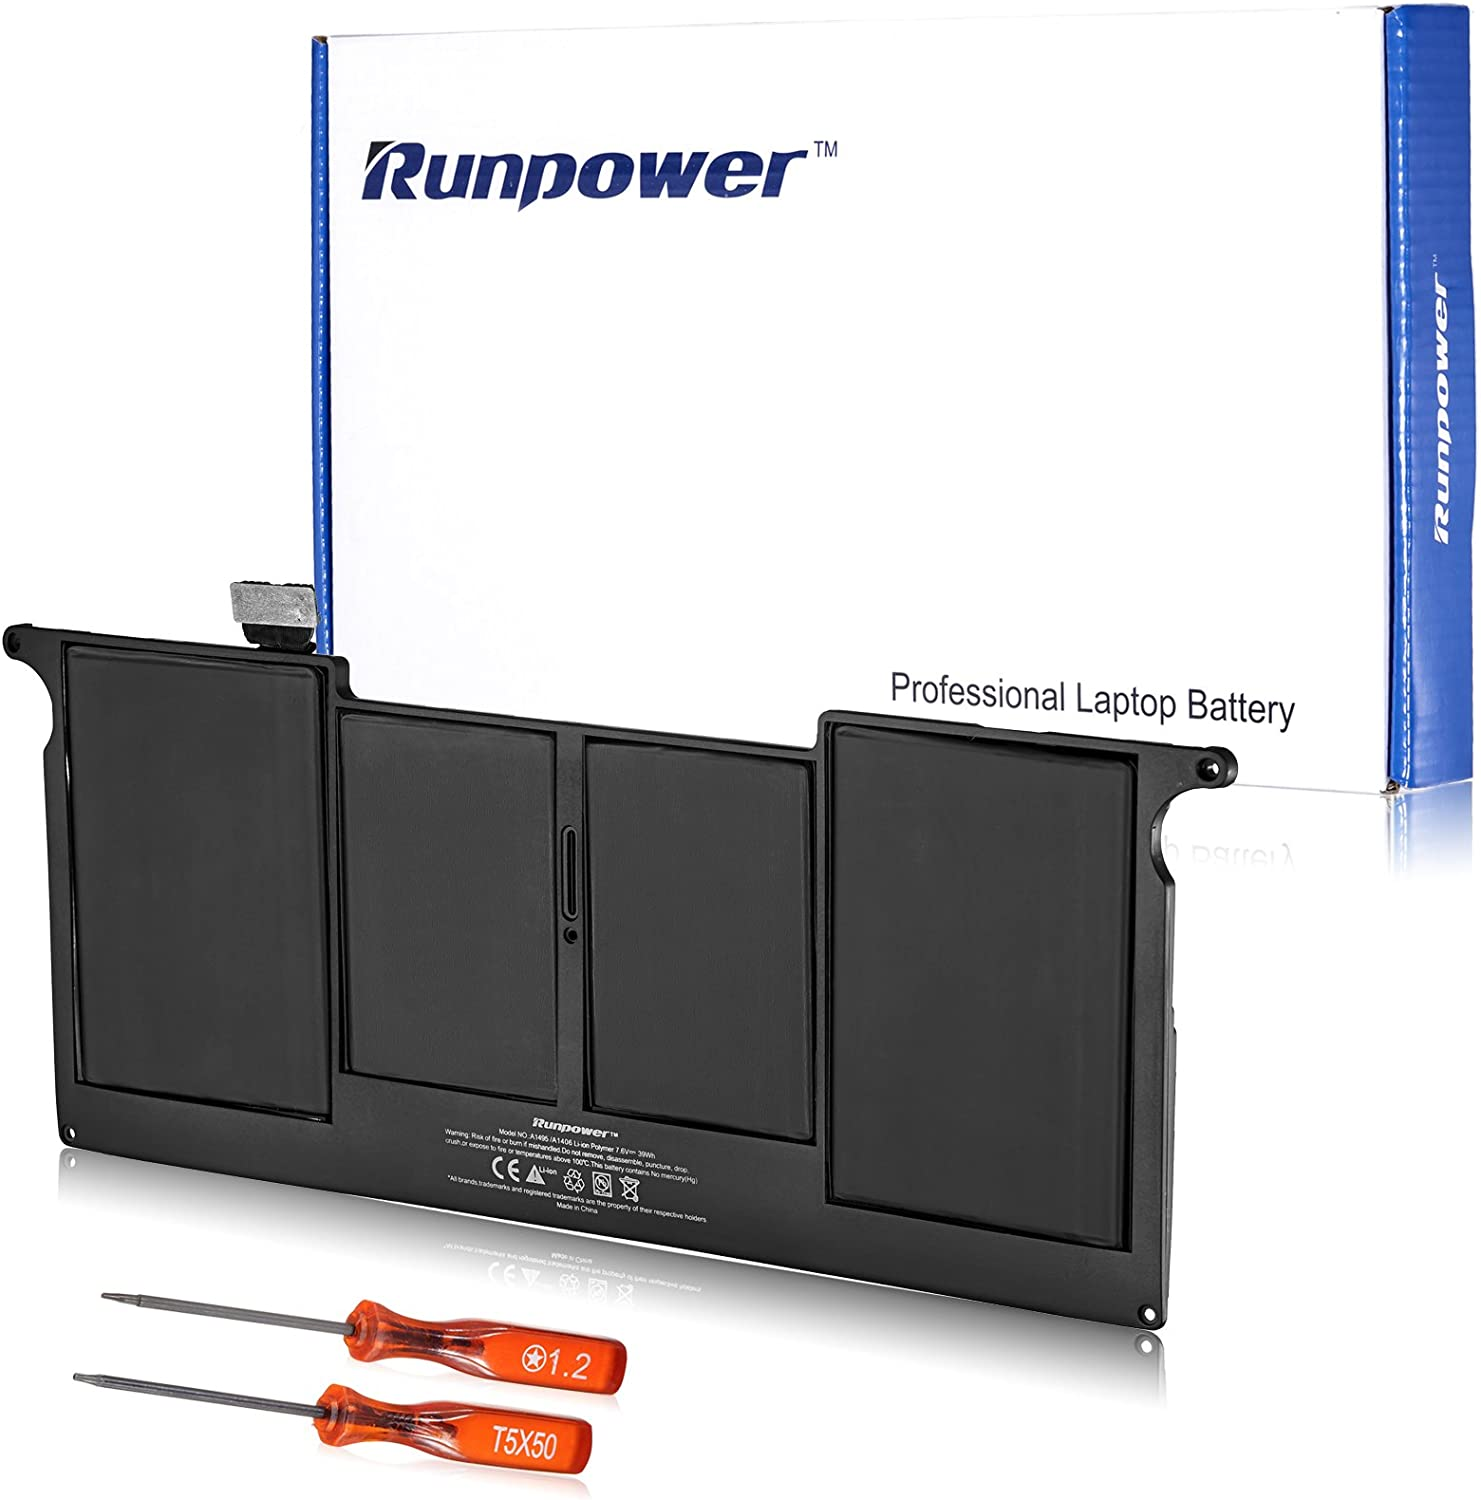 """Runpower New Laptop Battery for A1406 A1495 MacBook Air 11"""", Also fits A1370 (Mid 2011 Version) A1465 (Mid 2012 Mid 2013 Early 2014 Version) 020-7376-A 020-7377-A [Li-Polymer]"""